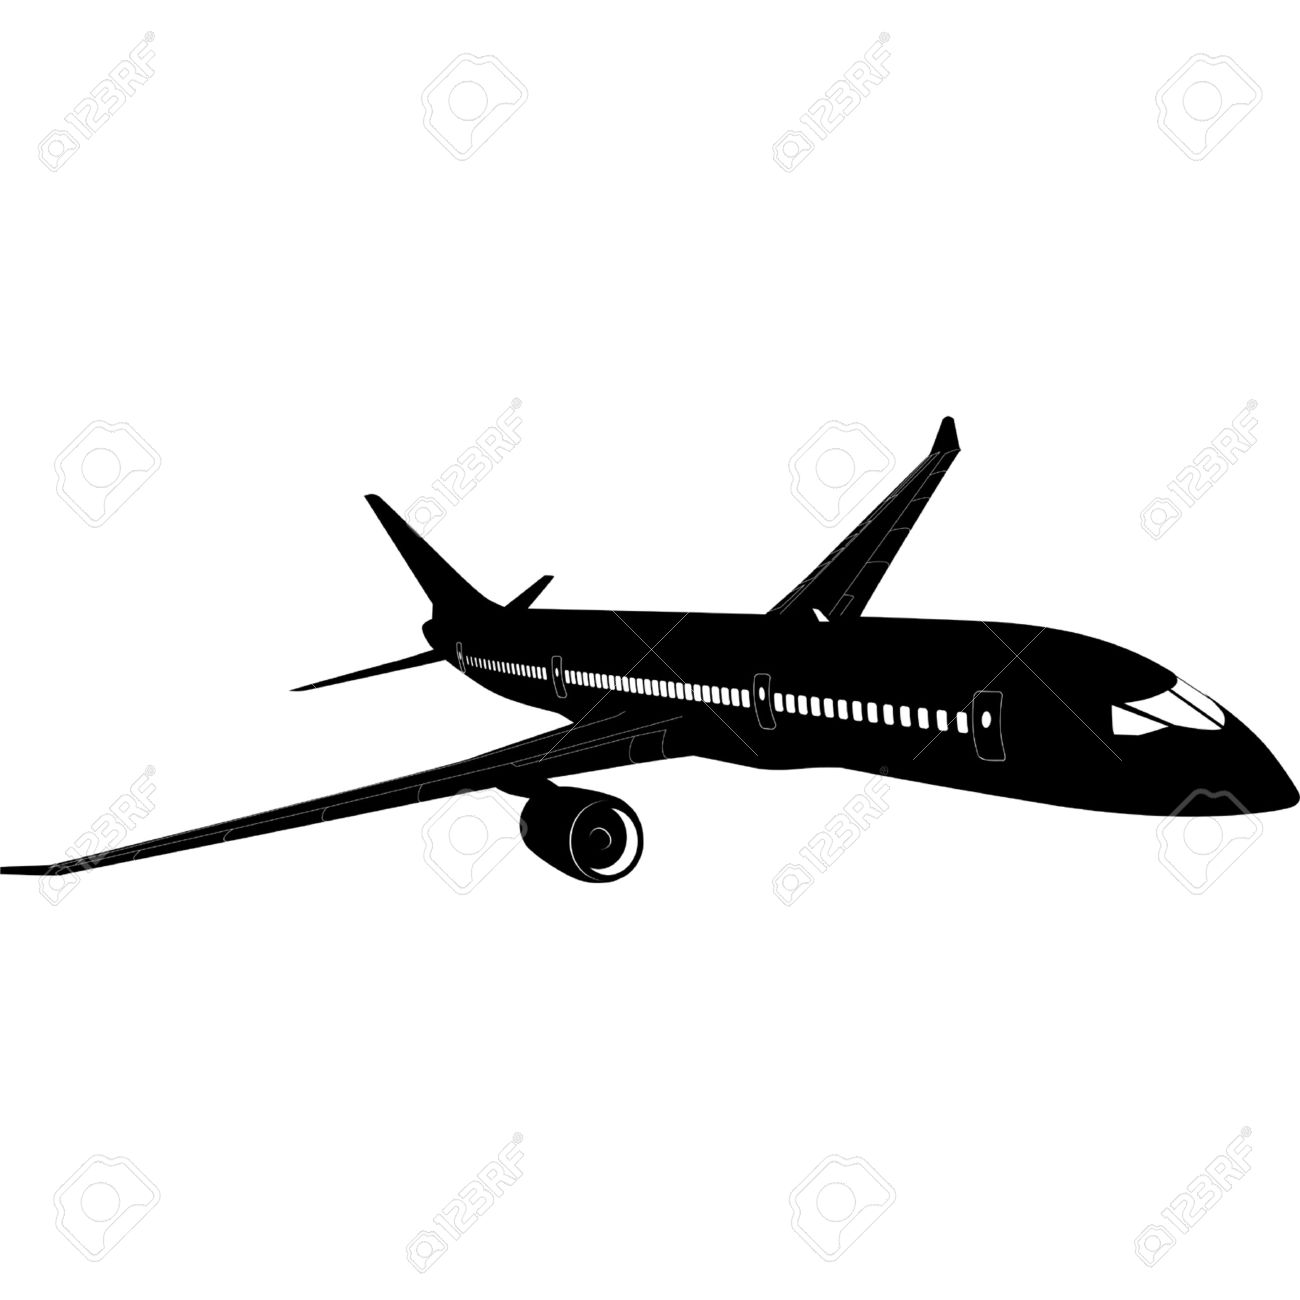 Airplane clipart jetliner. Airplanes silhouette at getdrawings